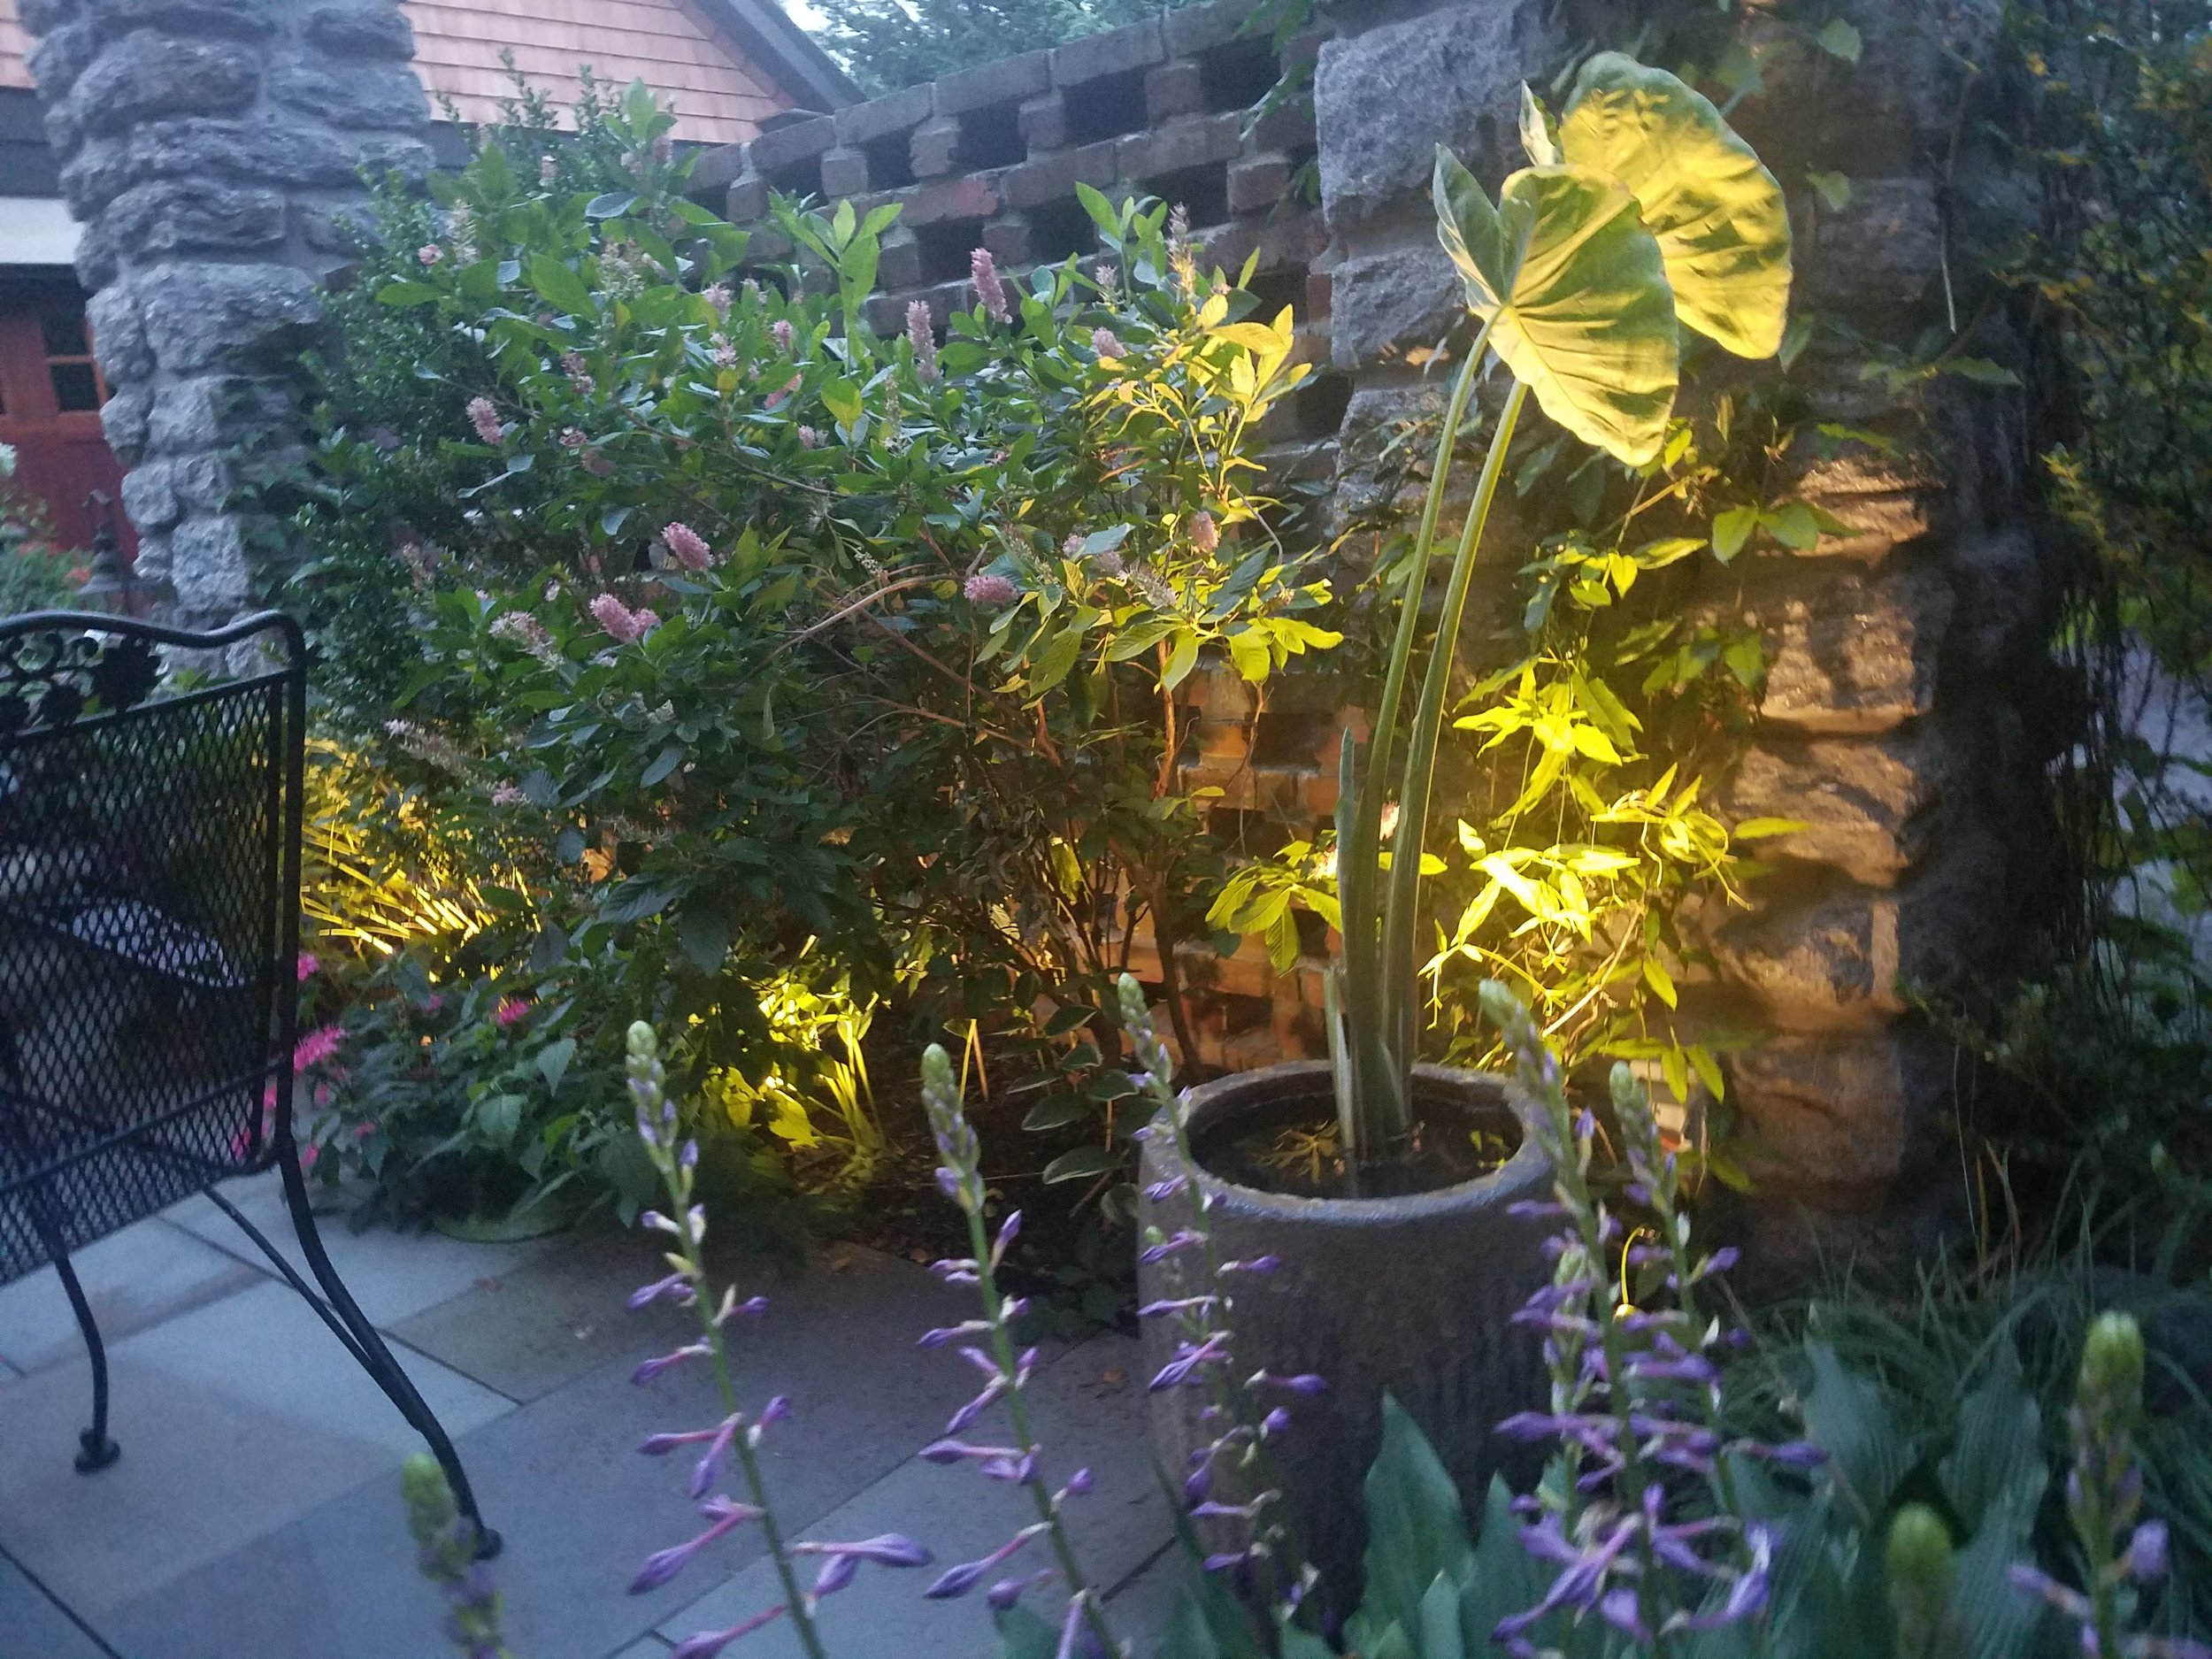 Lighting   Philadelphia Gardens installs low-voltage LED lighting which comes with 1-year of free maintenance, and many of the fixtures have 10 year guarantees. We offer a free demonstration to go over different fixtures / options that work best for showing off your garden at night.